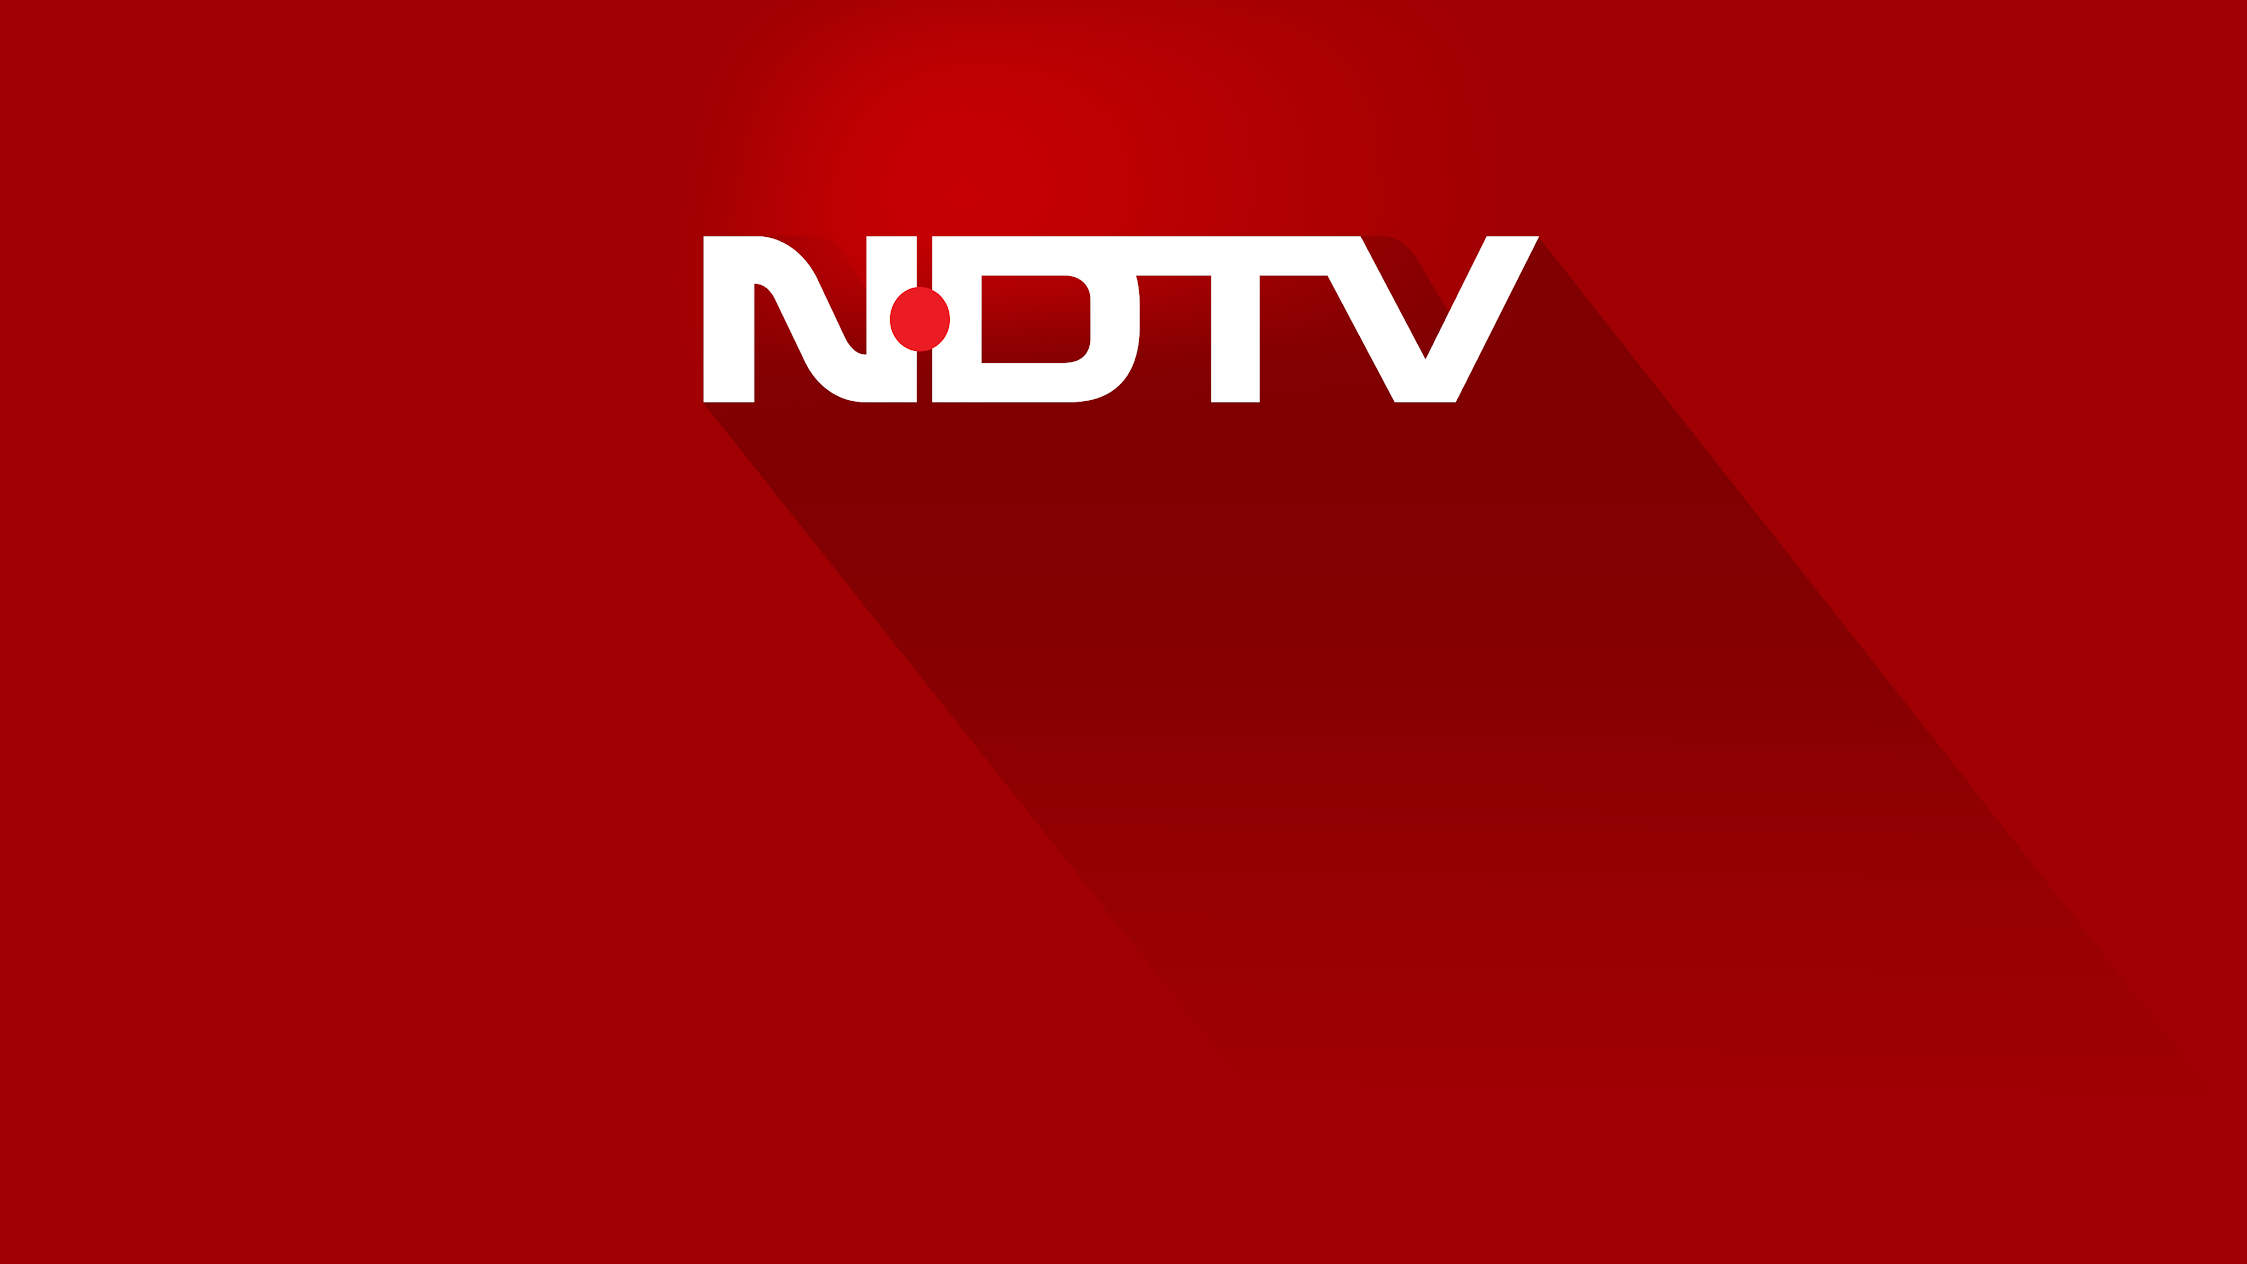 NDTV Official App